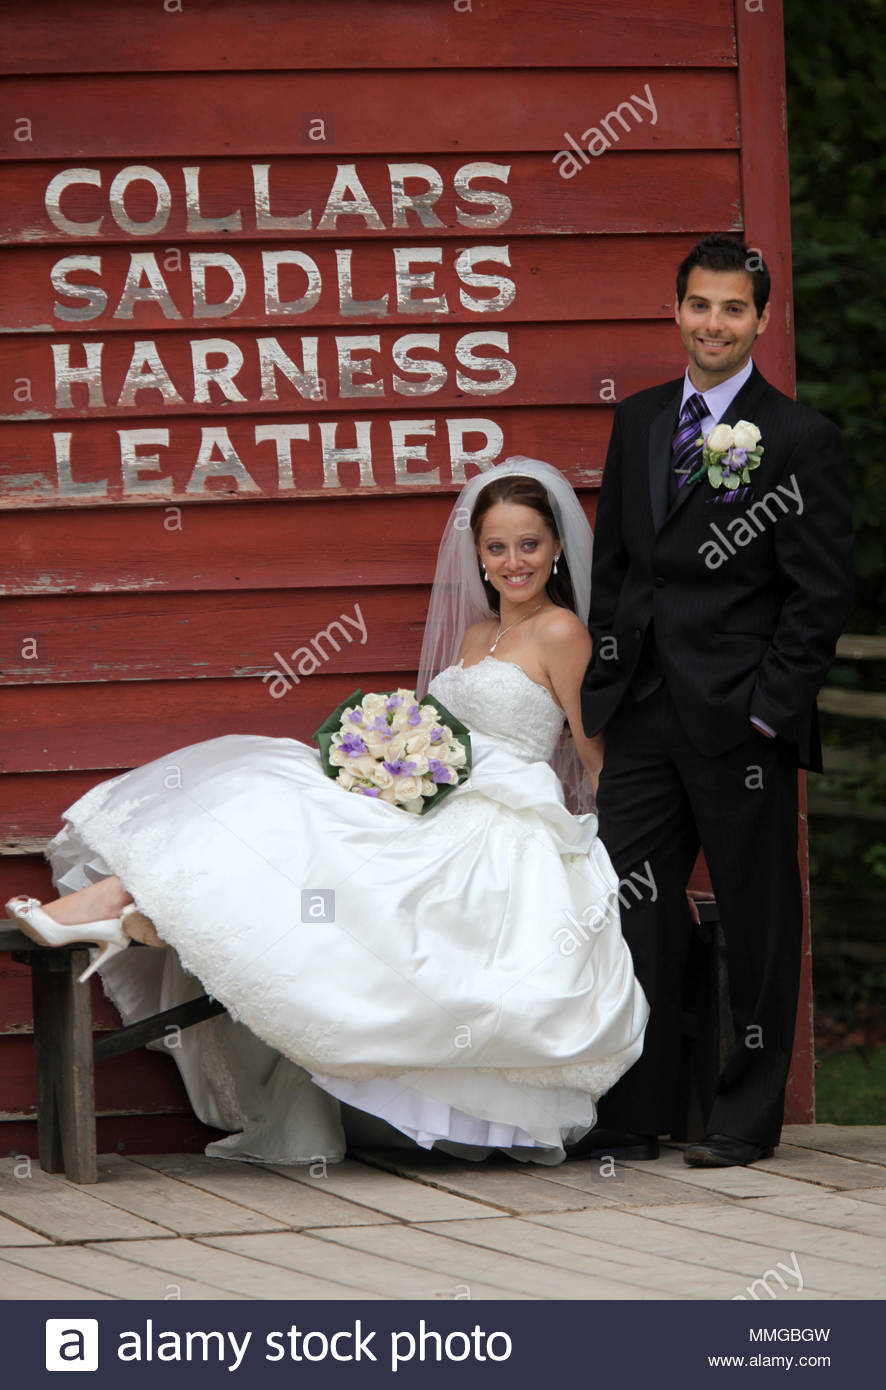 Caucasian weddings, their traditions and customs 68